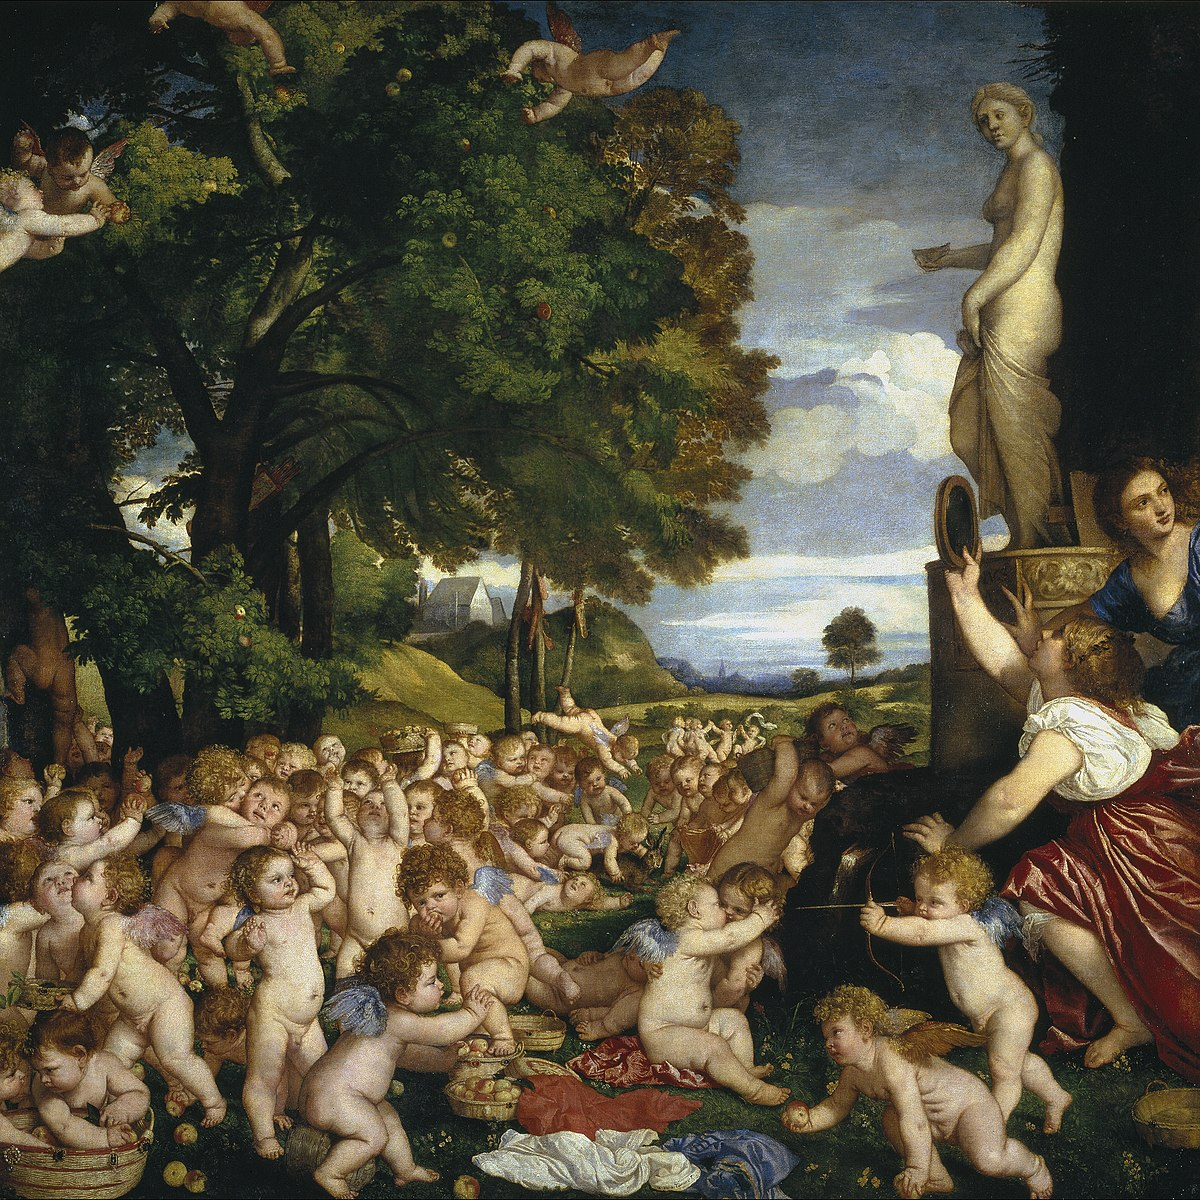 https://upload.wikimedia.org/wikipedia/commons/thumb/1/1a/Ofrenda_a_Venus.jpg/1200px-Ofrenda_a_Venus.jpg